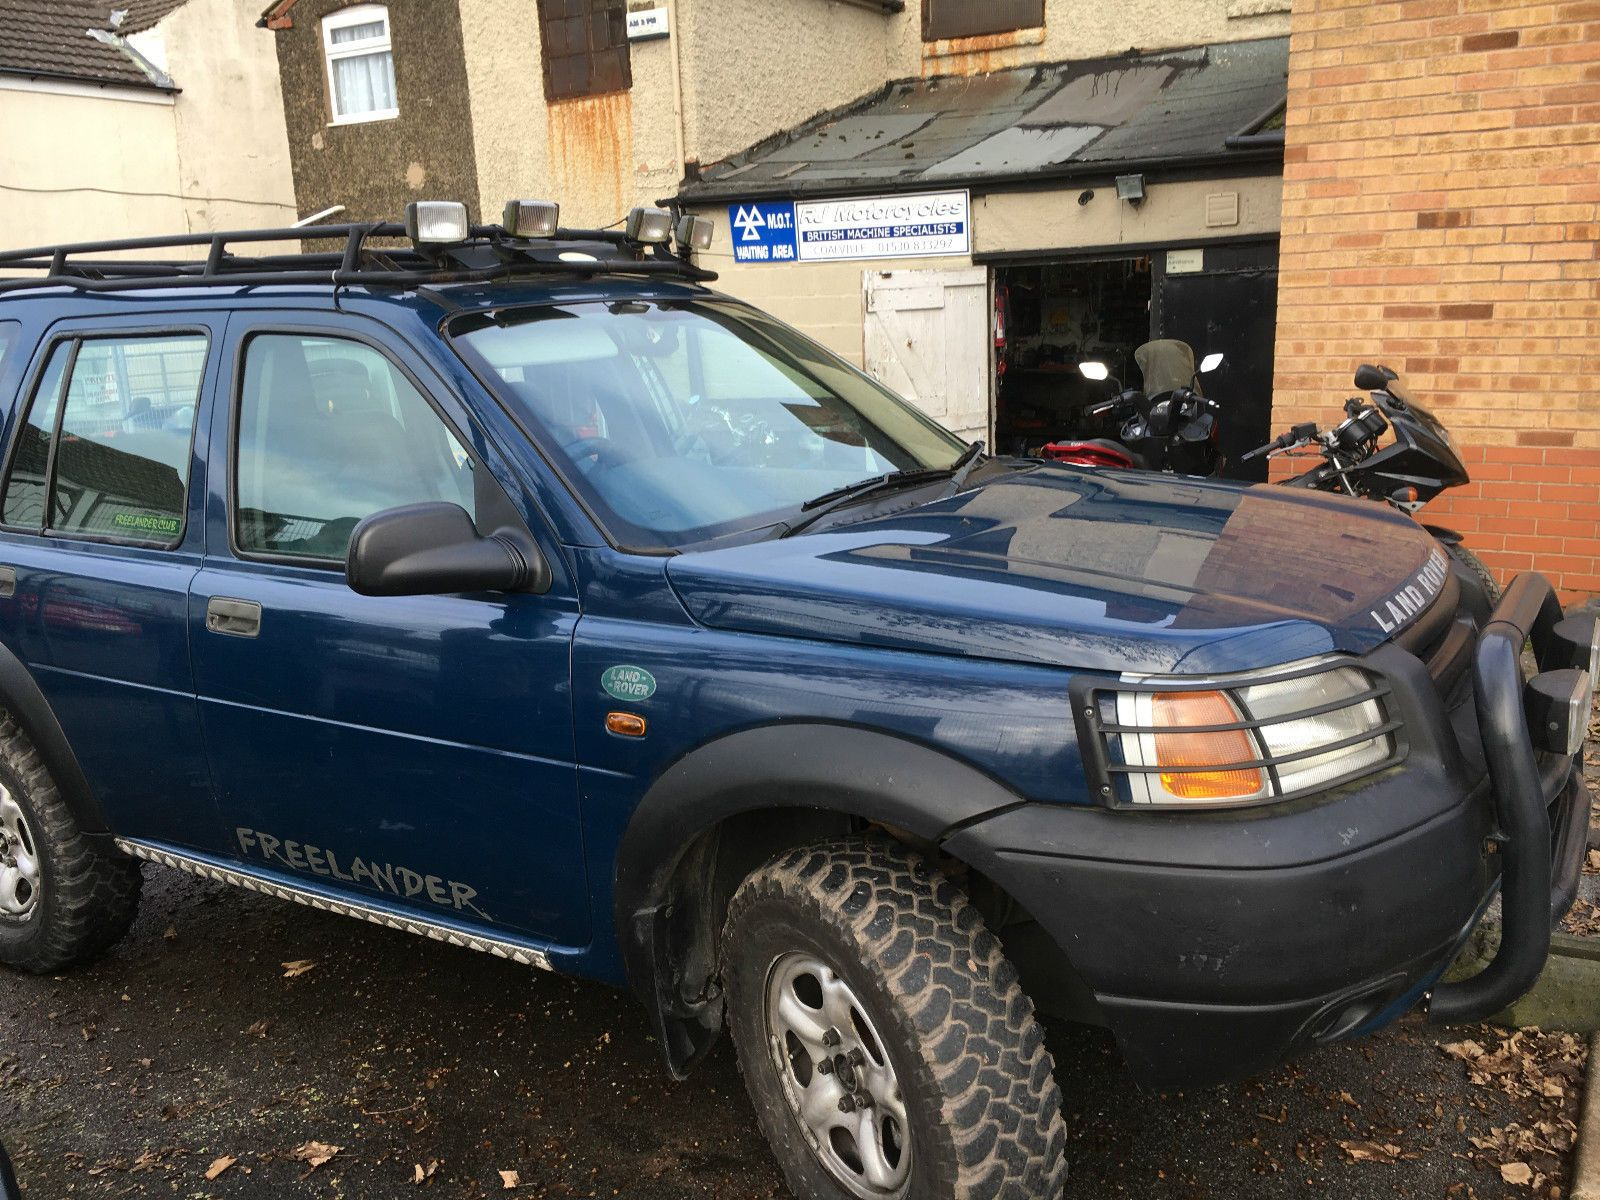 1998 land rover freelander xedi s wagon blue green laner off road